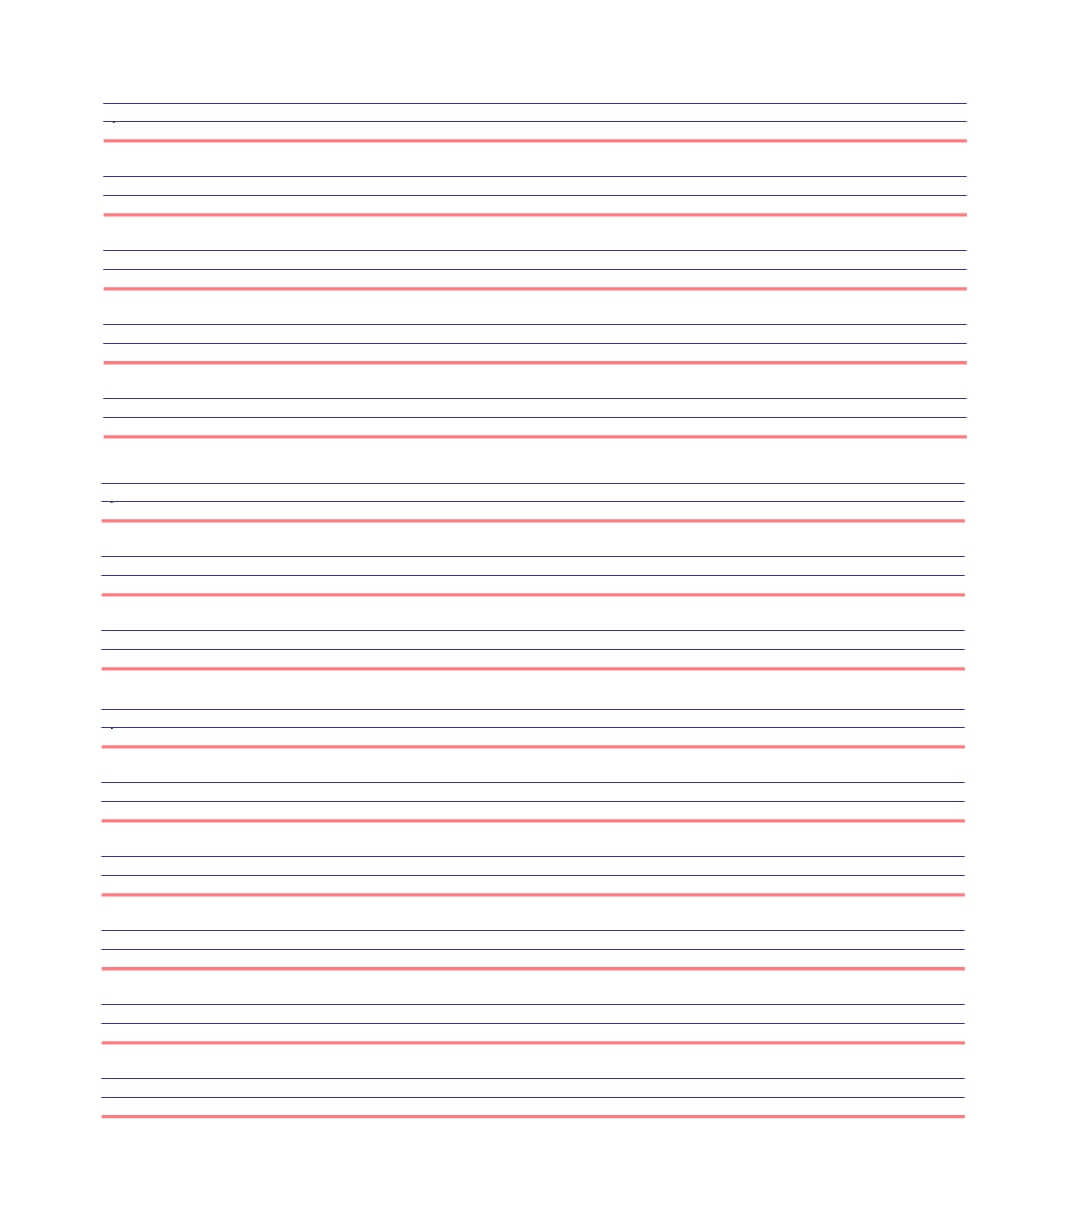 32 Printable Lined Paper Templates ᐅ Template Lab With Regard To Notebook Paper Template For Word 2010